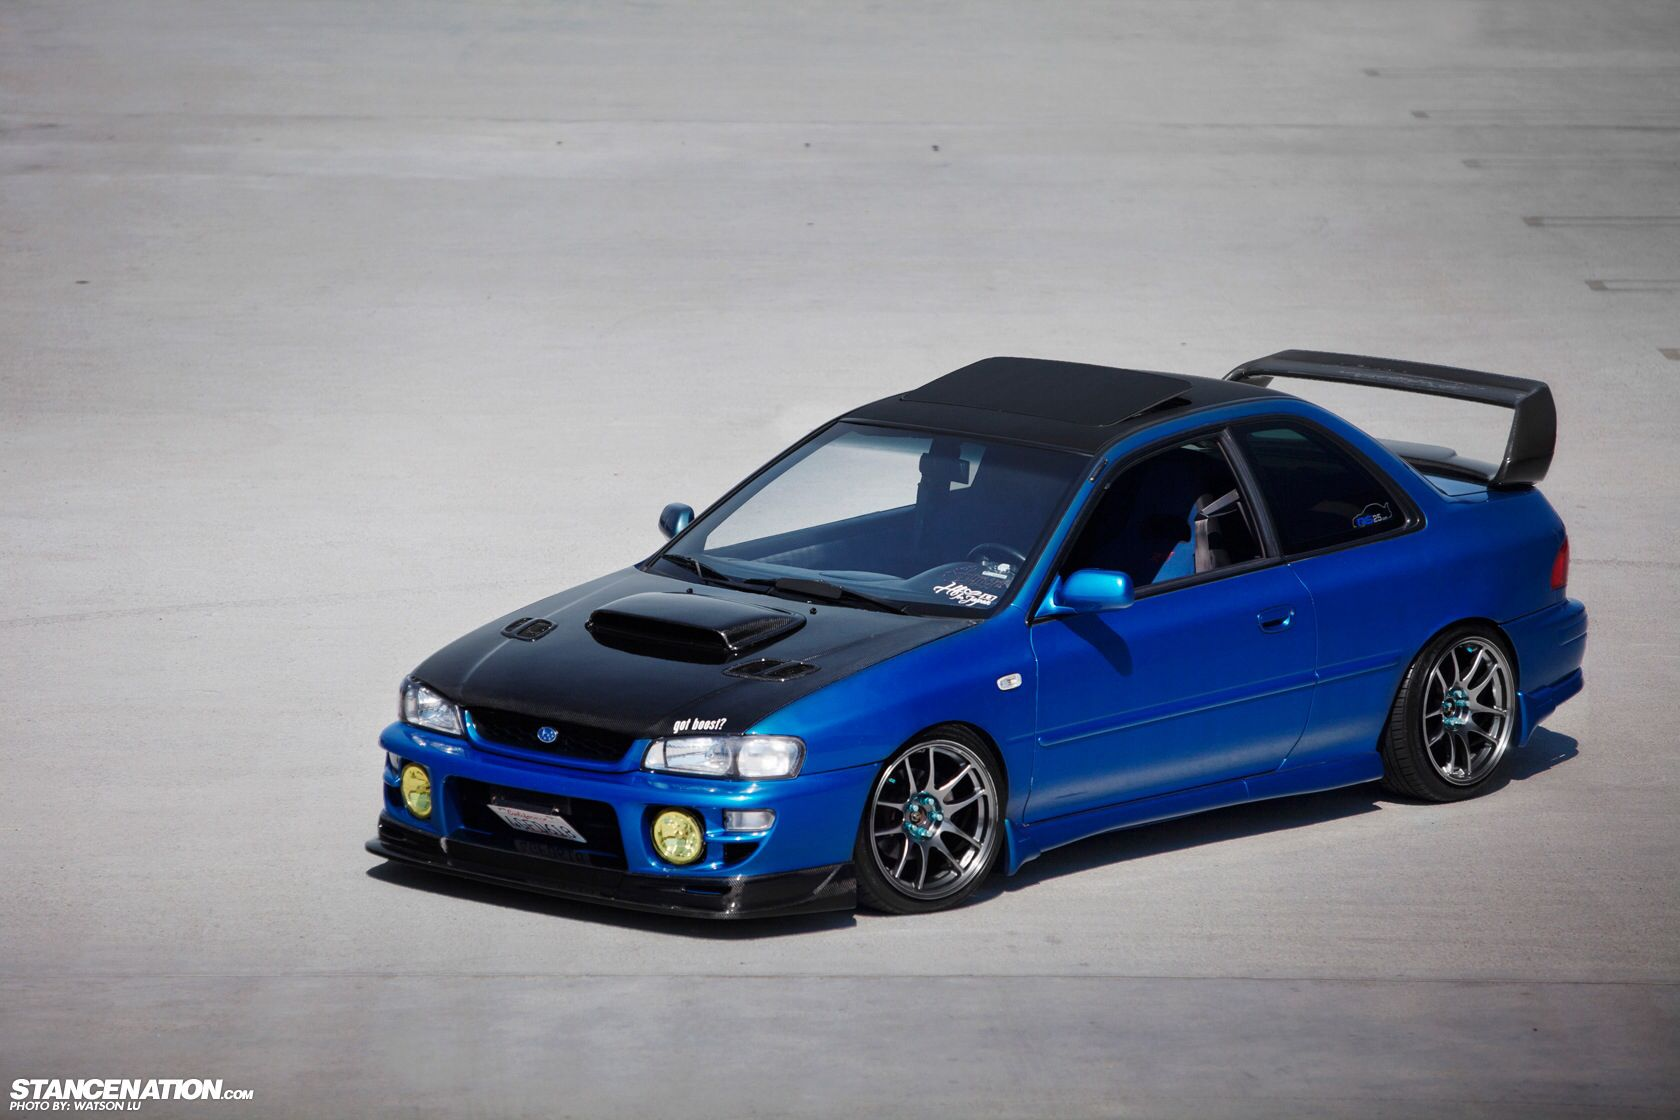 Subaru Impreza Wrx Sti 22b The Only Gen With 2 Doors And In My Opinion The Best Looking Subaru Jdm Subaru Subaru Impreza